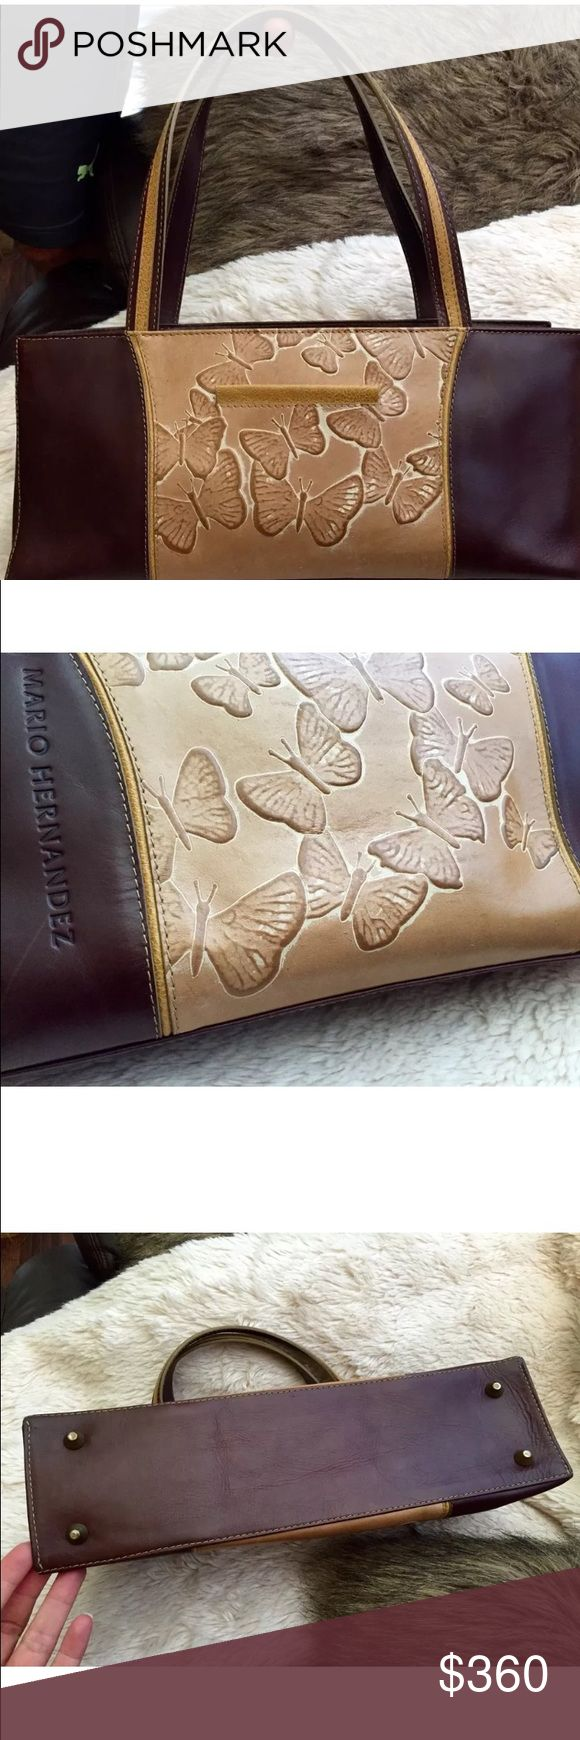 MH Embossed Butterflies Brown Leather Handbag Pre- Adored Mario Hernandez Leather Handbag. Embossed butterfly details. Single Magnetic Closure. Hand stiched excellent quality leather. Immaculate condition. Please check out my other Mario Hernandez Mariposa Collection items. Thanks!  Mario Hernandez Bags Shoulder Bags